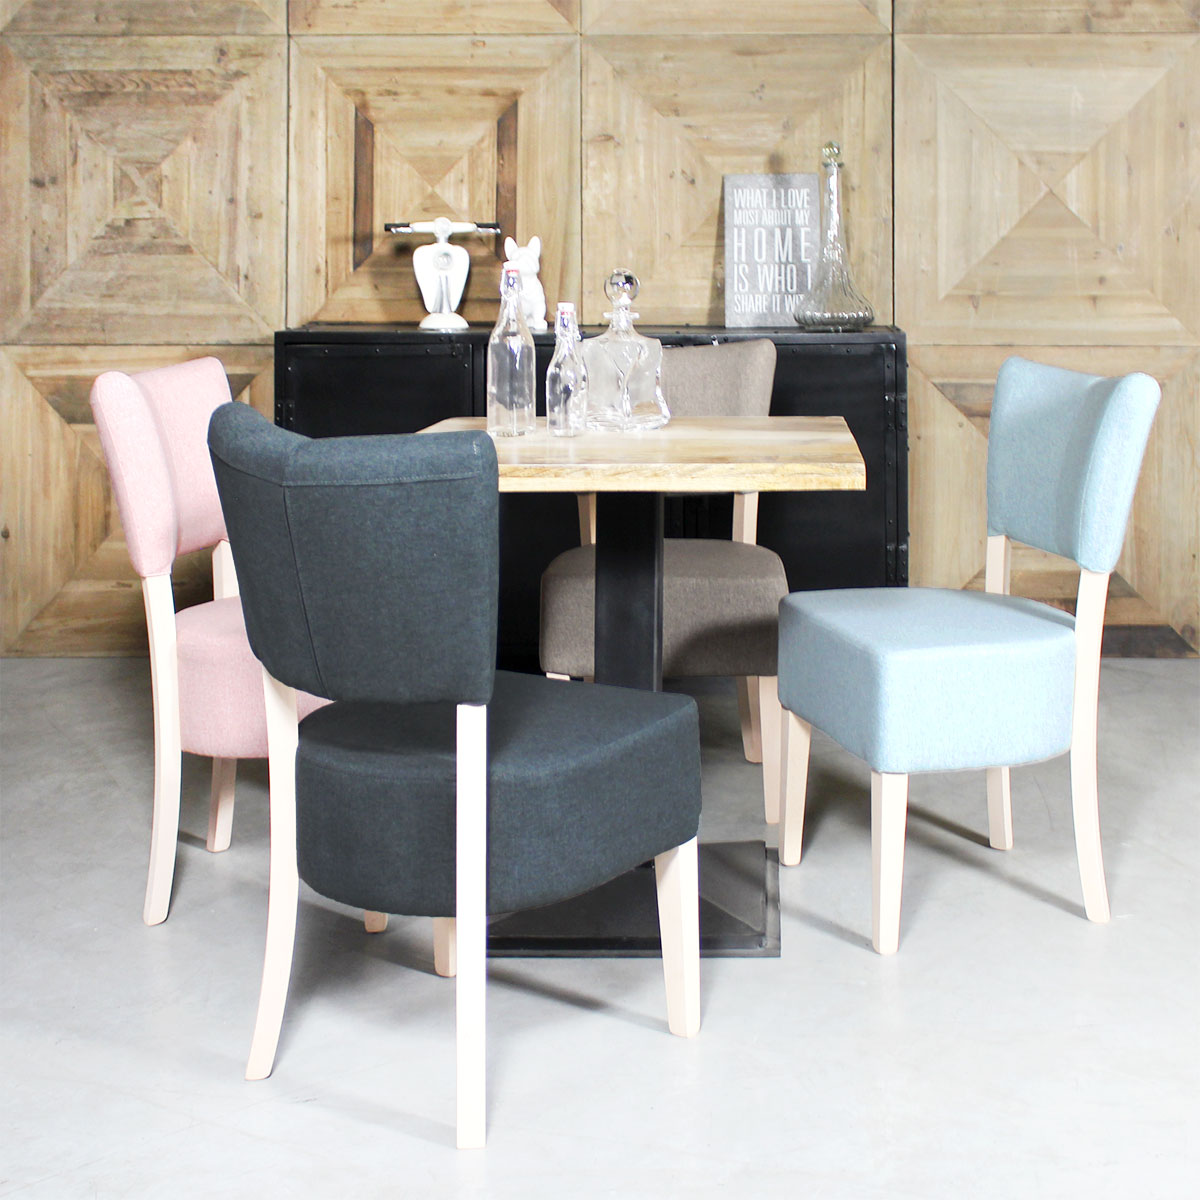 chaise style fauteuil scandinave depareillees